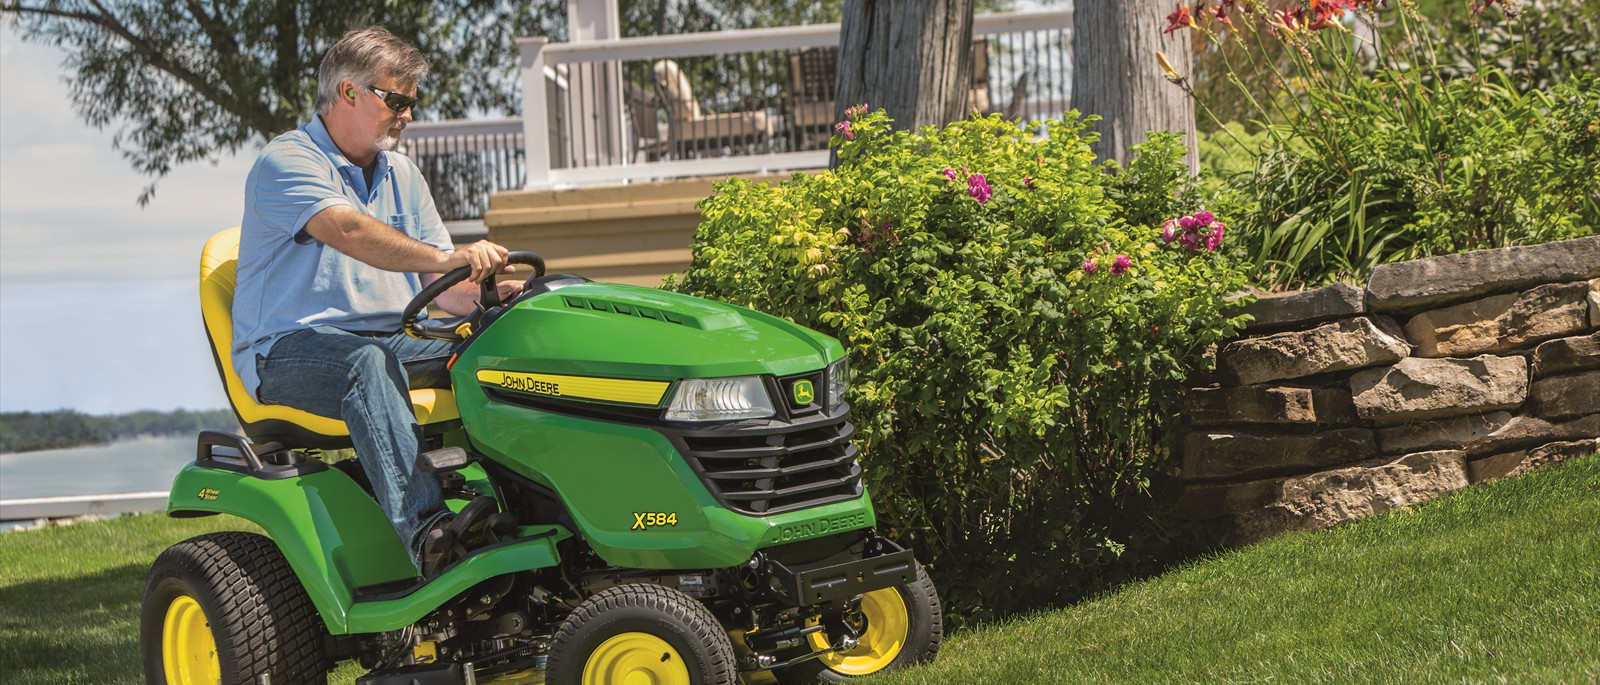 Ride-on mowers makes mowing a breeze